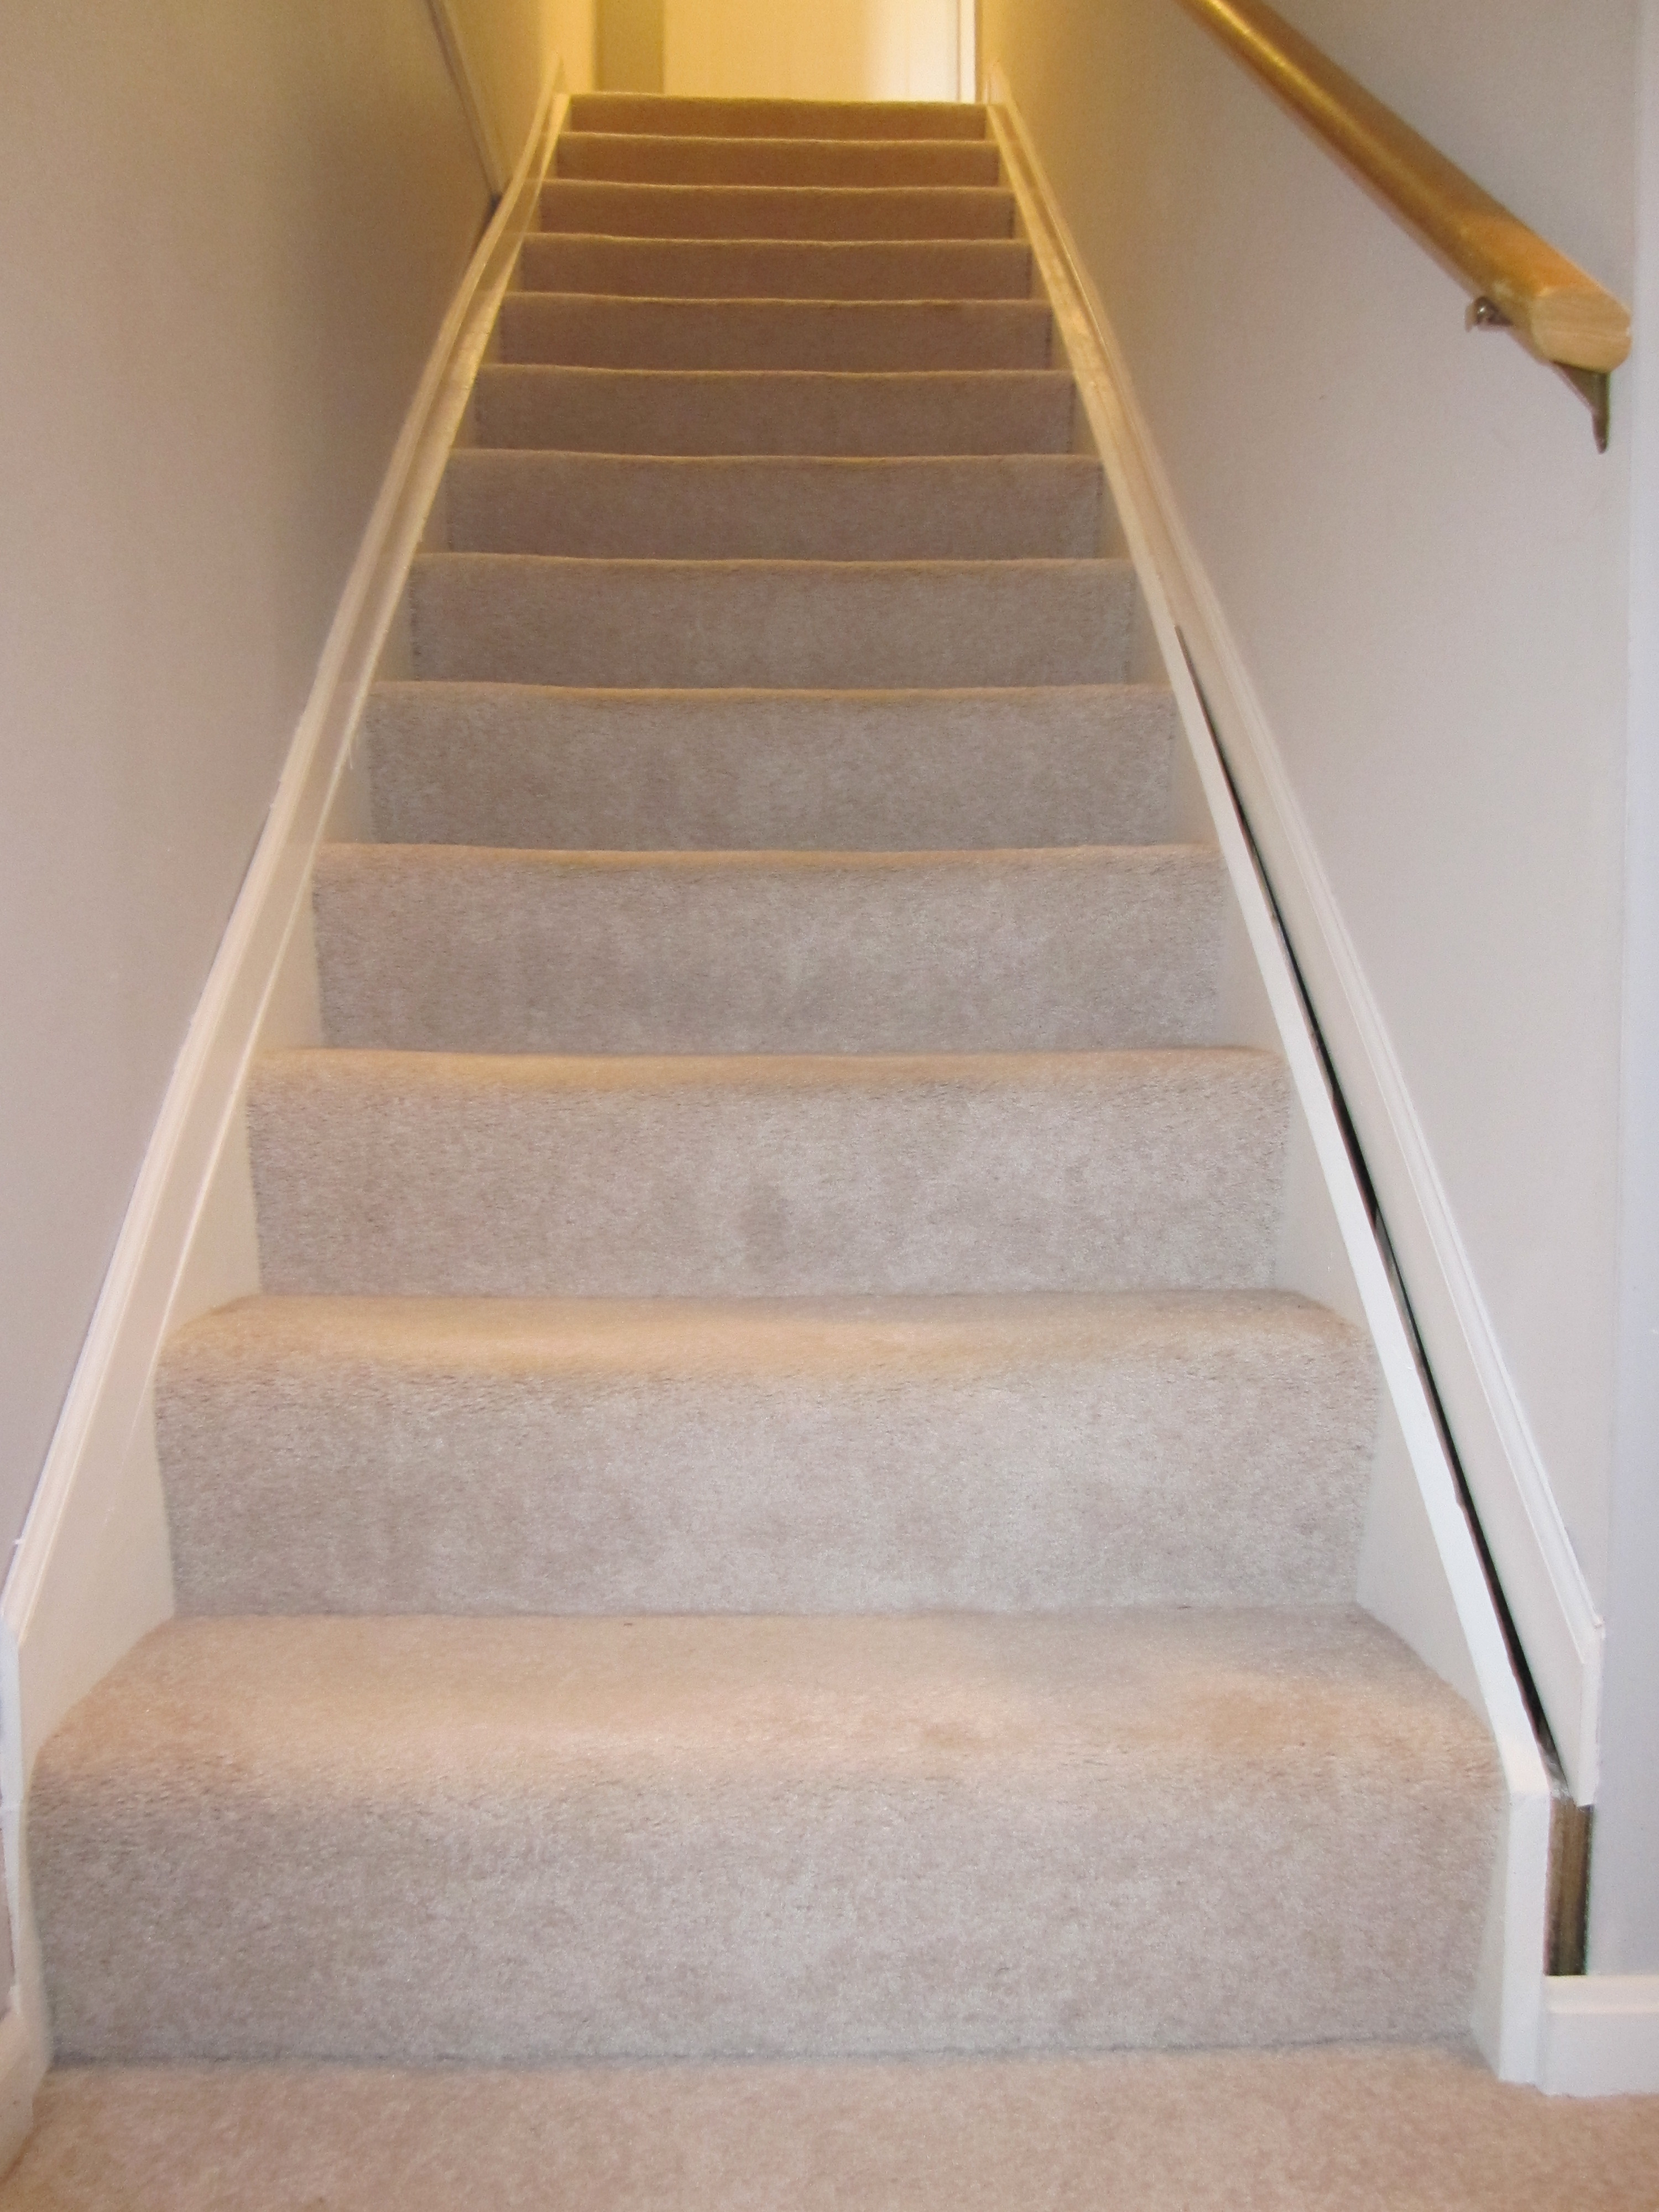 here are the stairs leading down into the basement as you can see